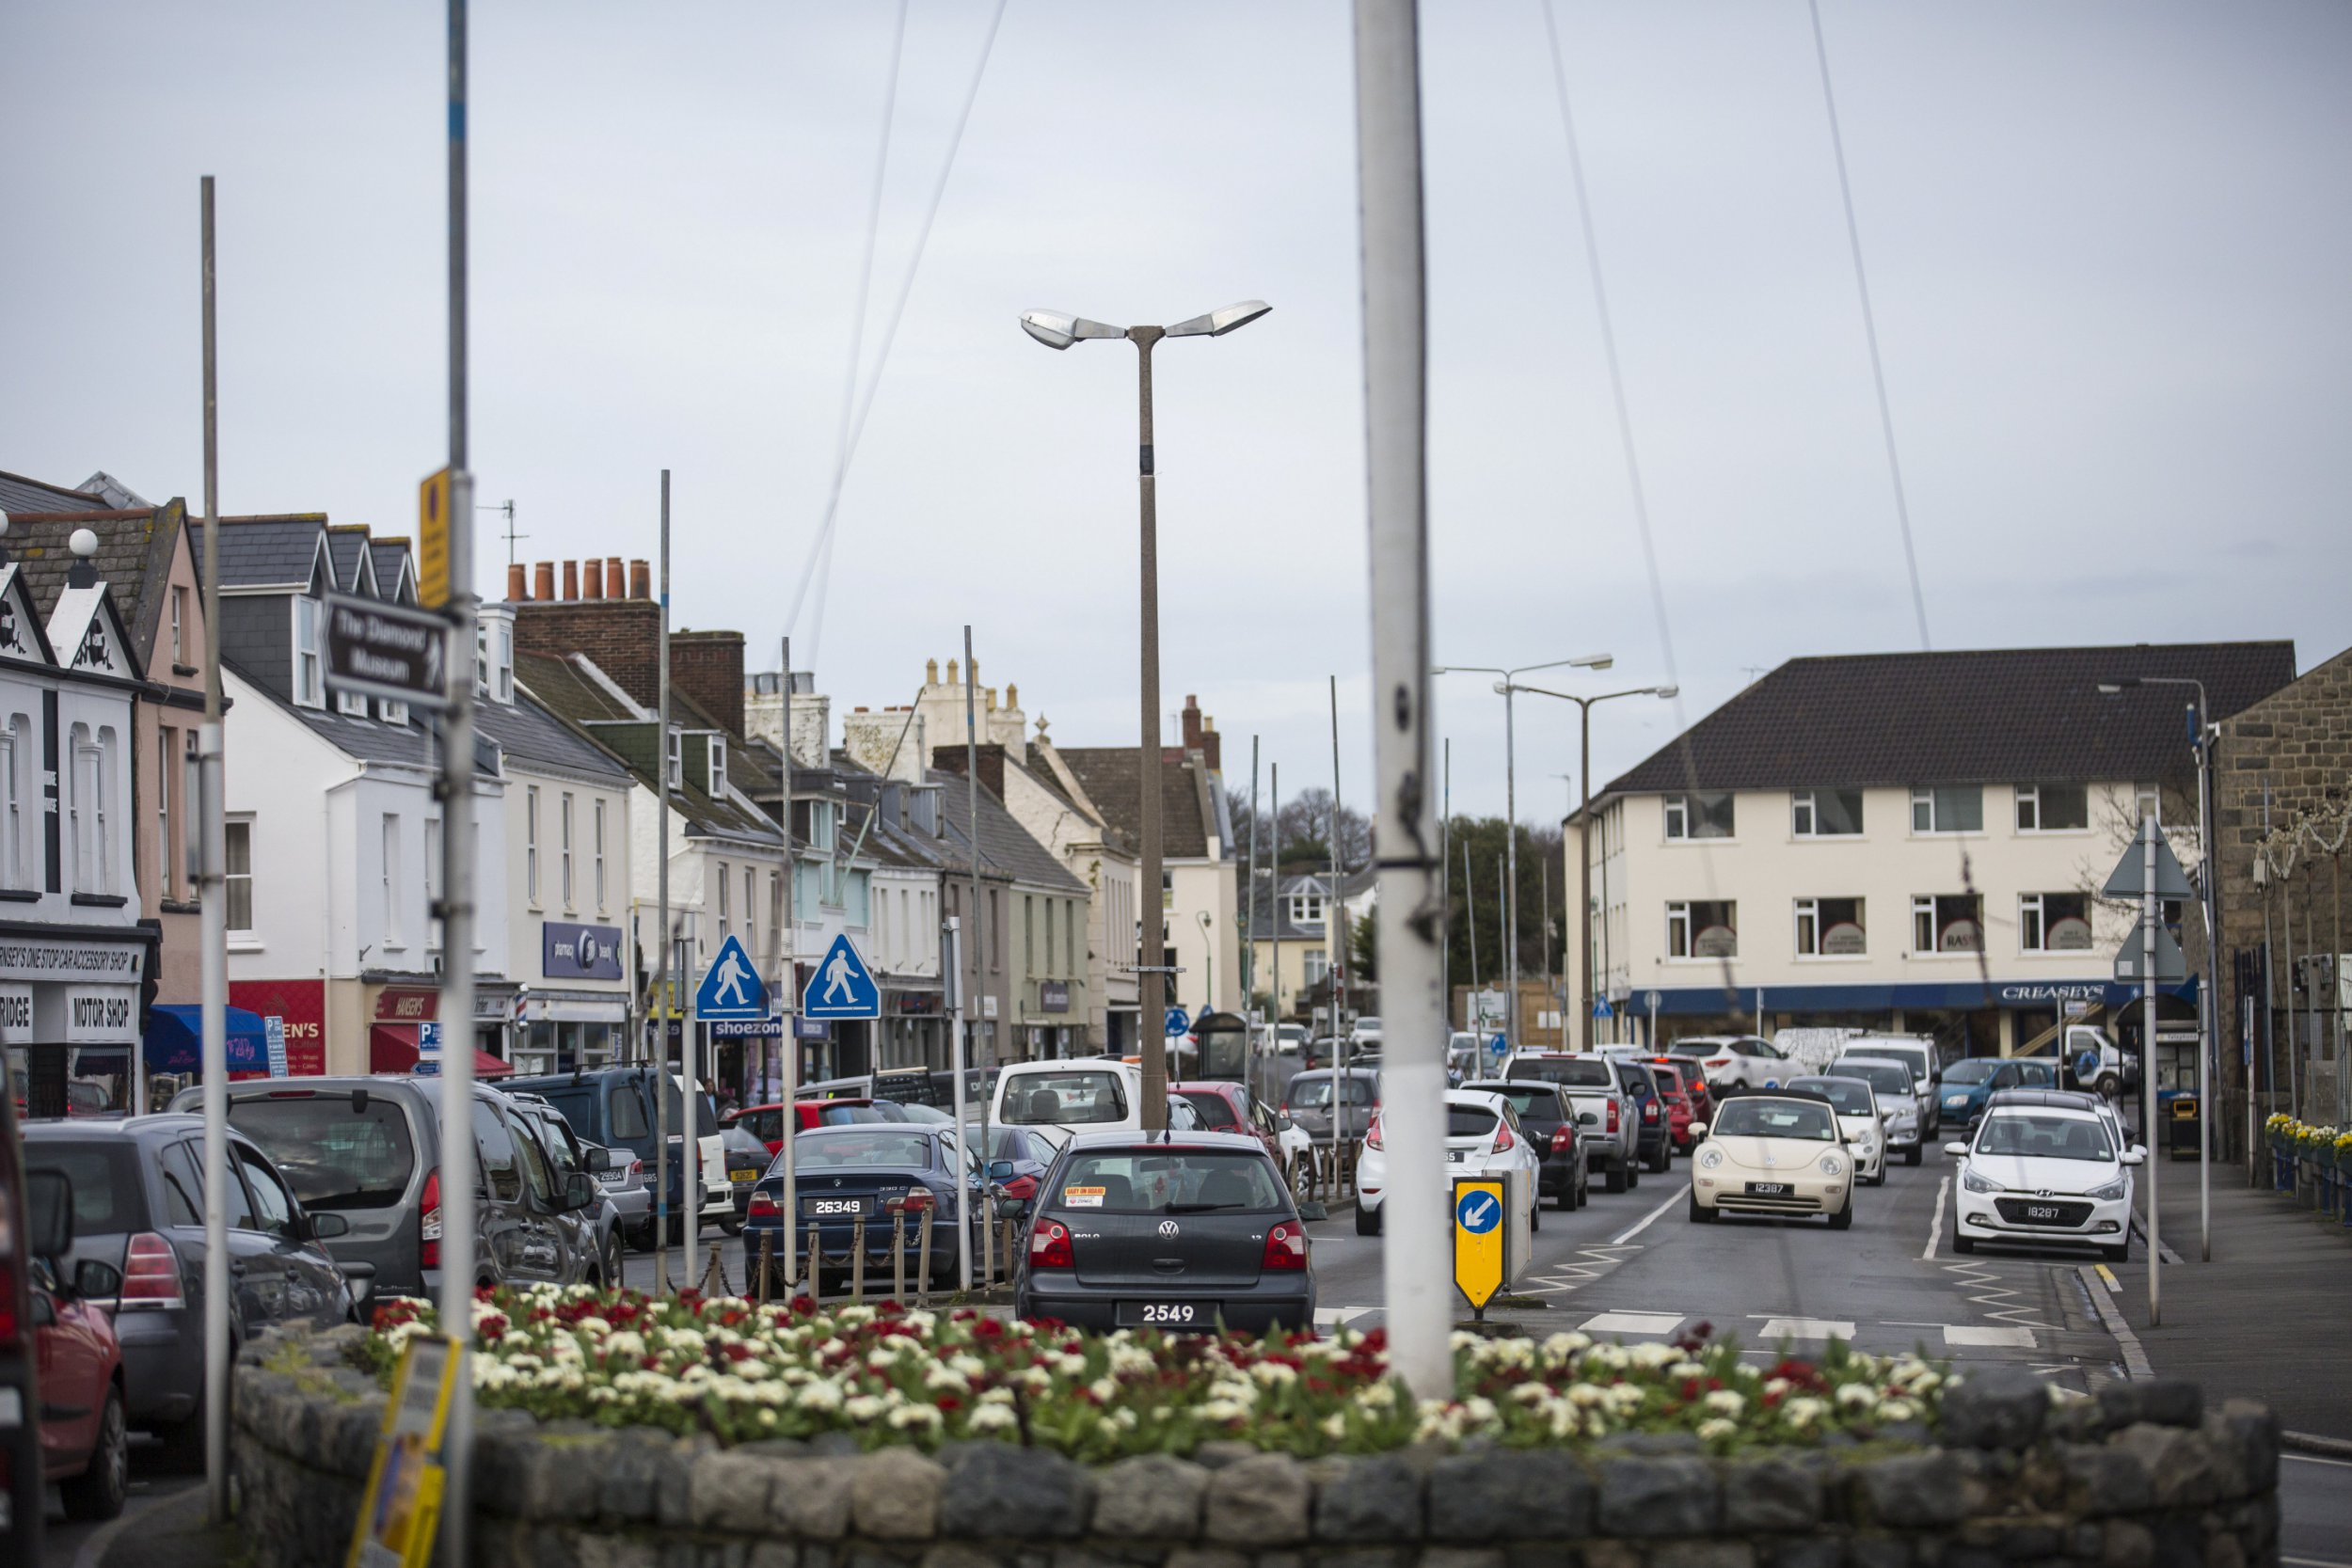 Some of the 135 sign posts, lamp posts and flag poles which have been erected on a single street called the 'The Bridge' in St Sampson, Guernsey. See SWNS story SWPLsigns; A street dubbed the most 'poled' in Britain is facing a pole-axe as a council vows to remove some of its 135 sign posts, lamp posts and flag poles. The short stretch of road is littered with poles of different types - with locals giving it a variety of nicknames including 'Poldark' and 'The Forest Of Poles'. In a stretch of just 500m on the street called 'The Bridge' there are warning signs, shops signs, lamposts, notice signs and flag pole posts. The street is a popular tourist destination in St Sampson, Guernsey, but now locals have had enough - and the issue has been taken to the Channel Island highways department.